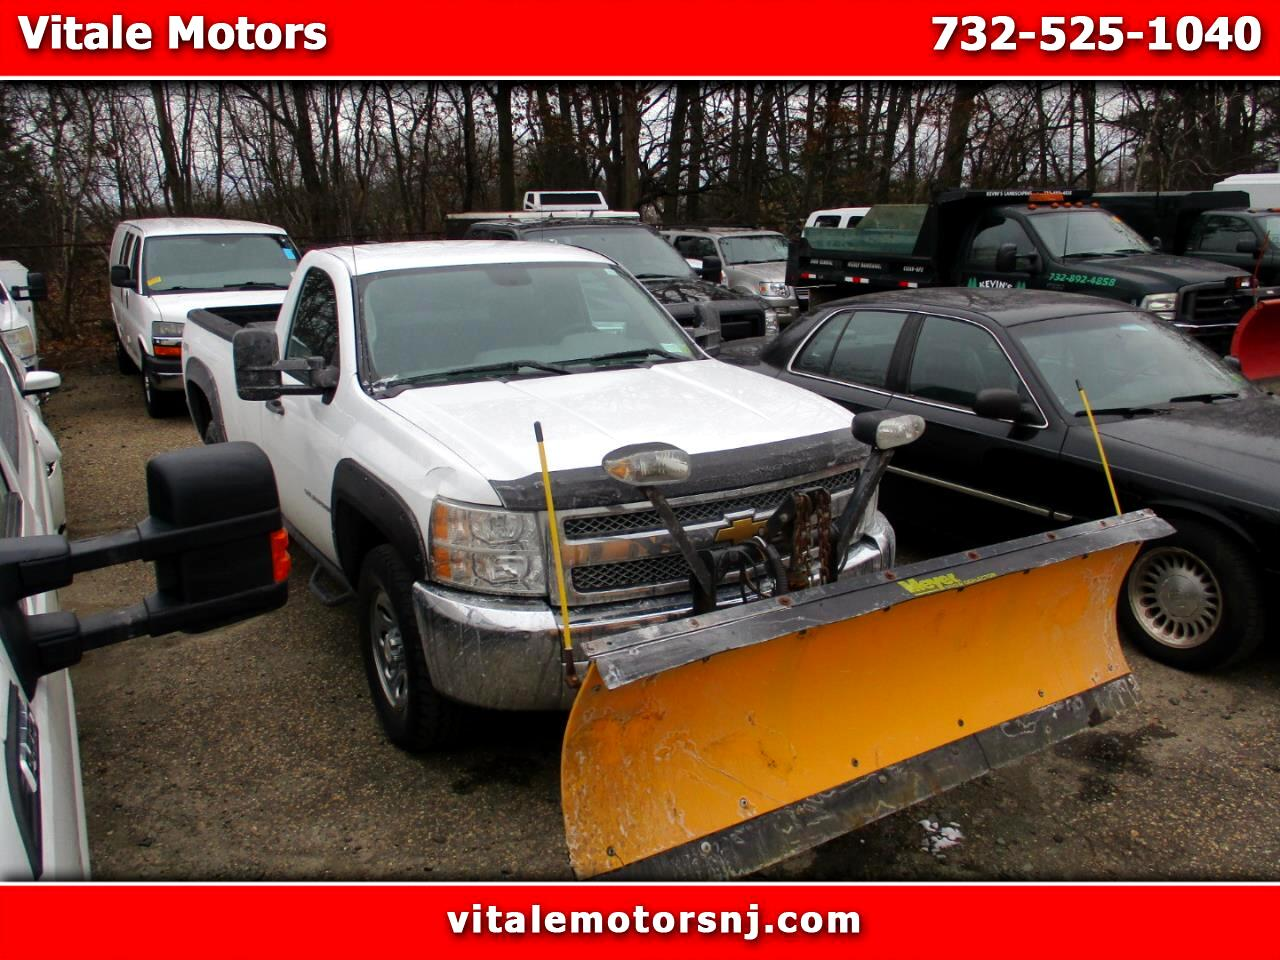 2013 Chevrolet Silverado 1500 LONG BED 4X4 W/ SNOW PLOW!